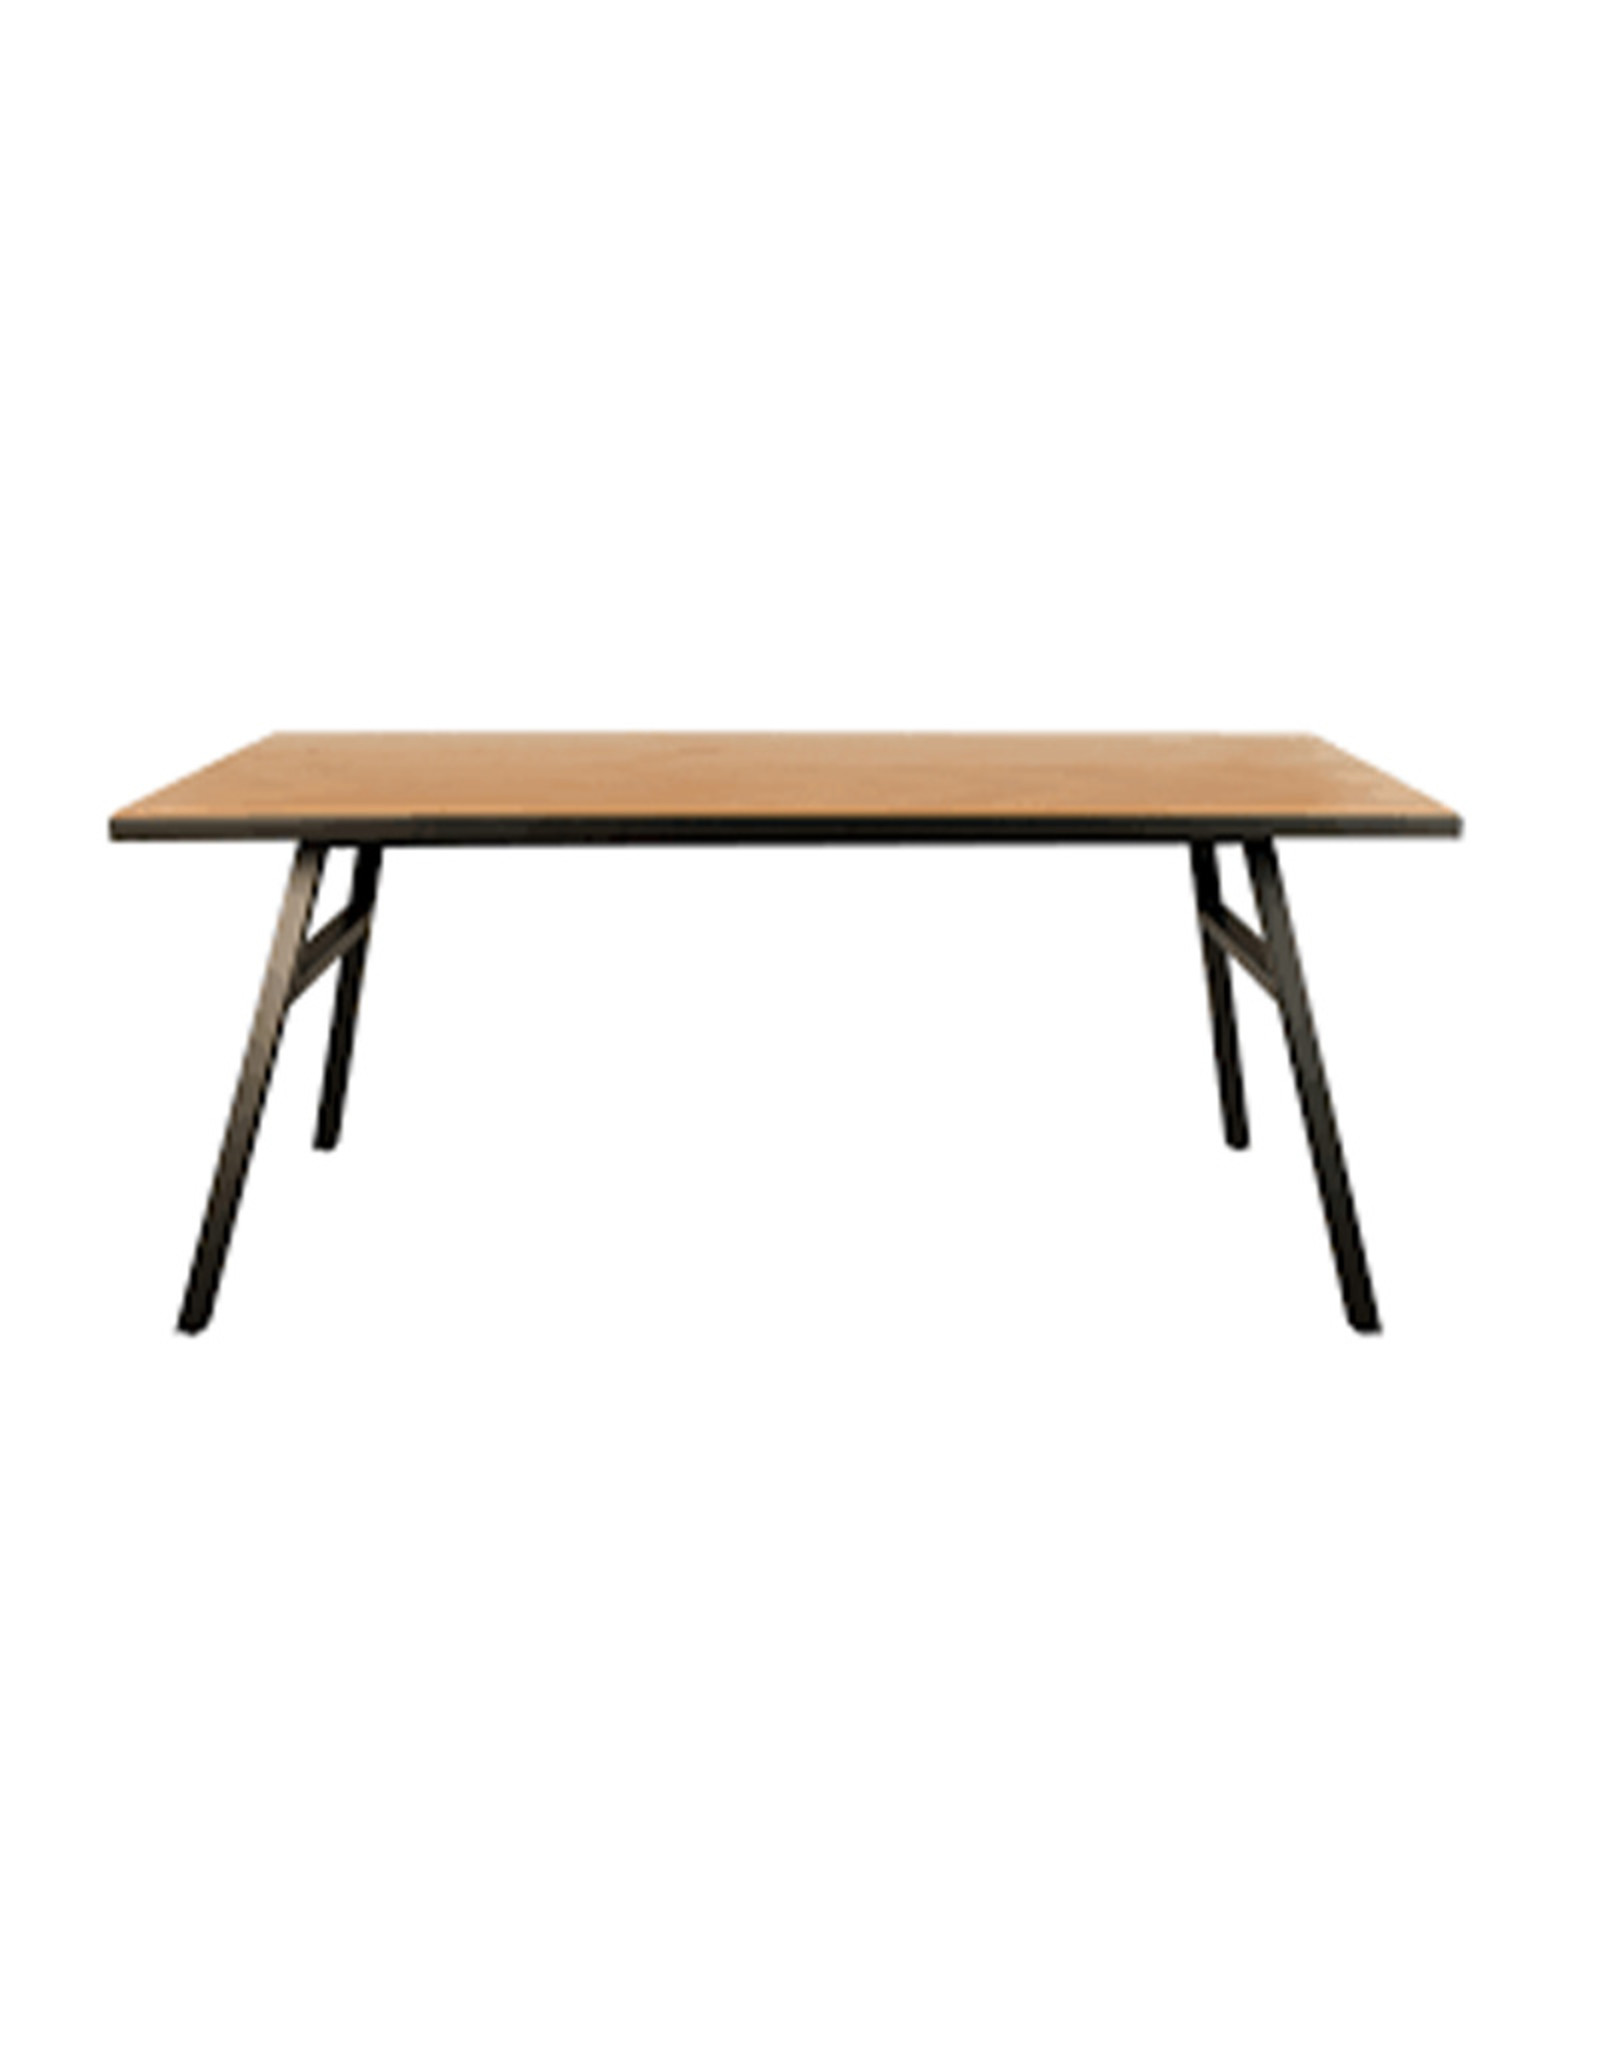 ZUIVER BV Seth Dining Table